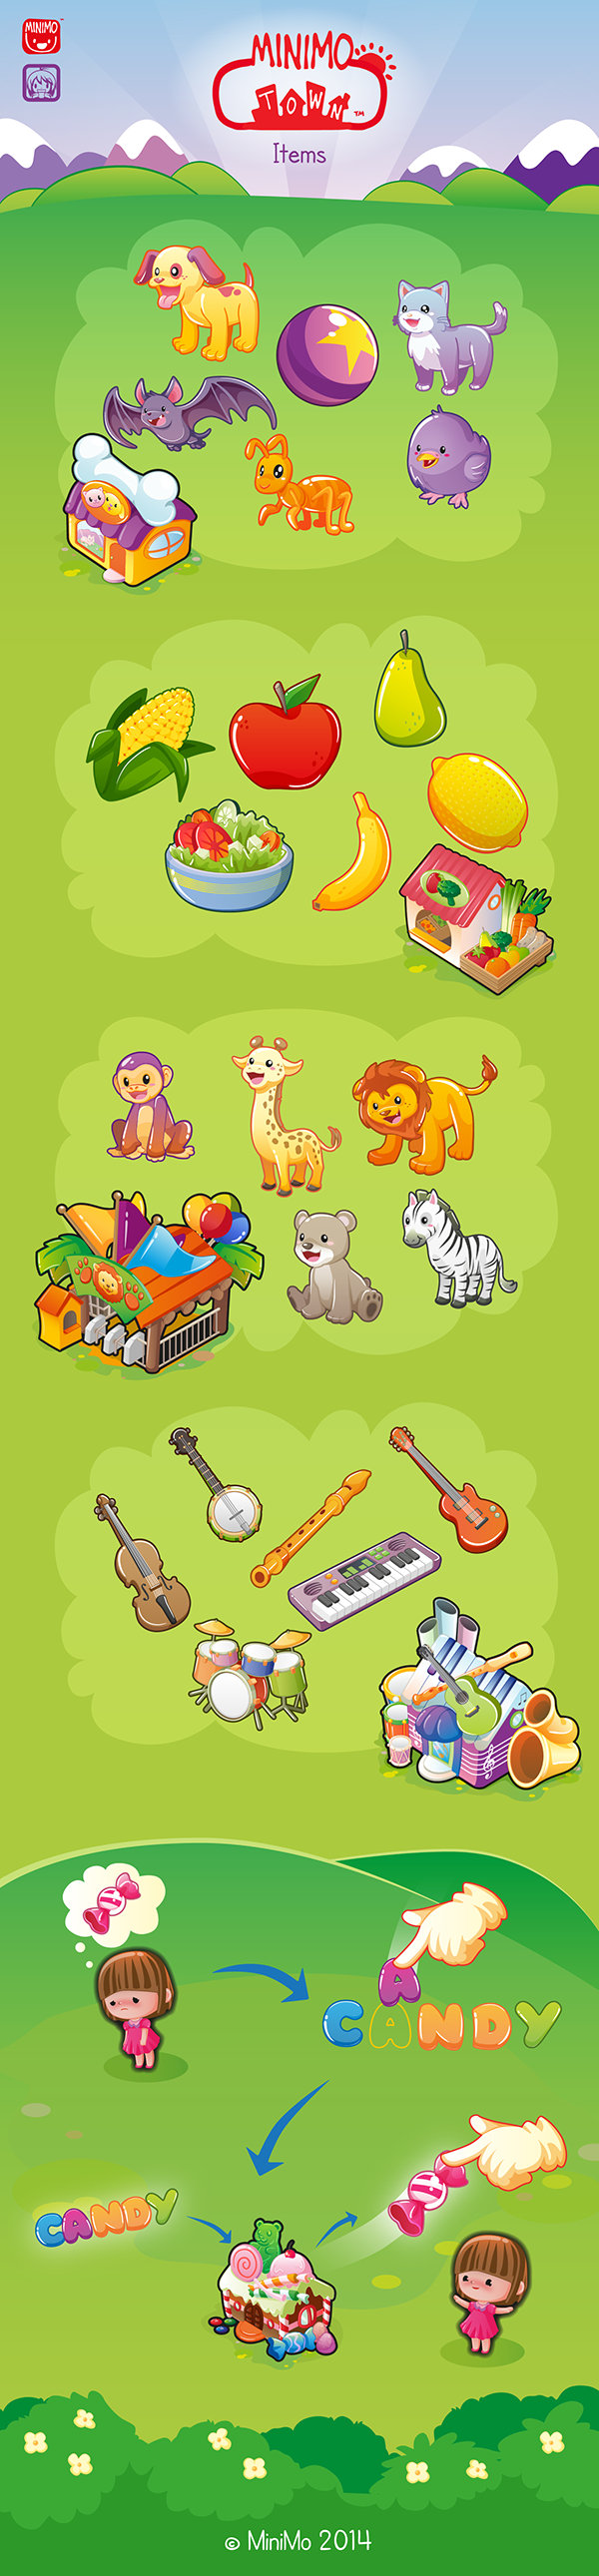 minimo town game children Items Game Assets colorful kids pets Music Instruments fruits